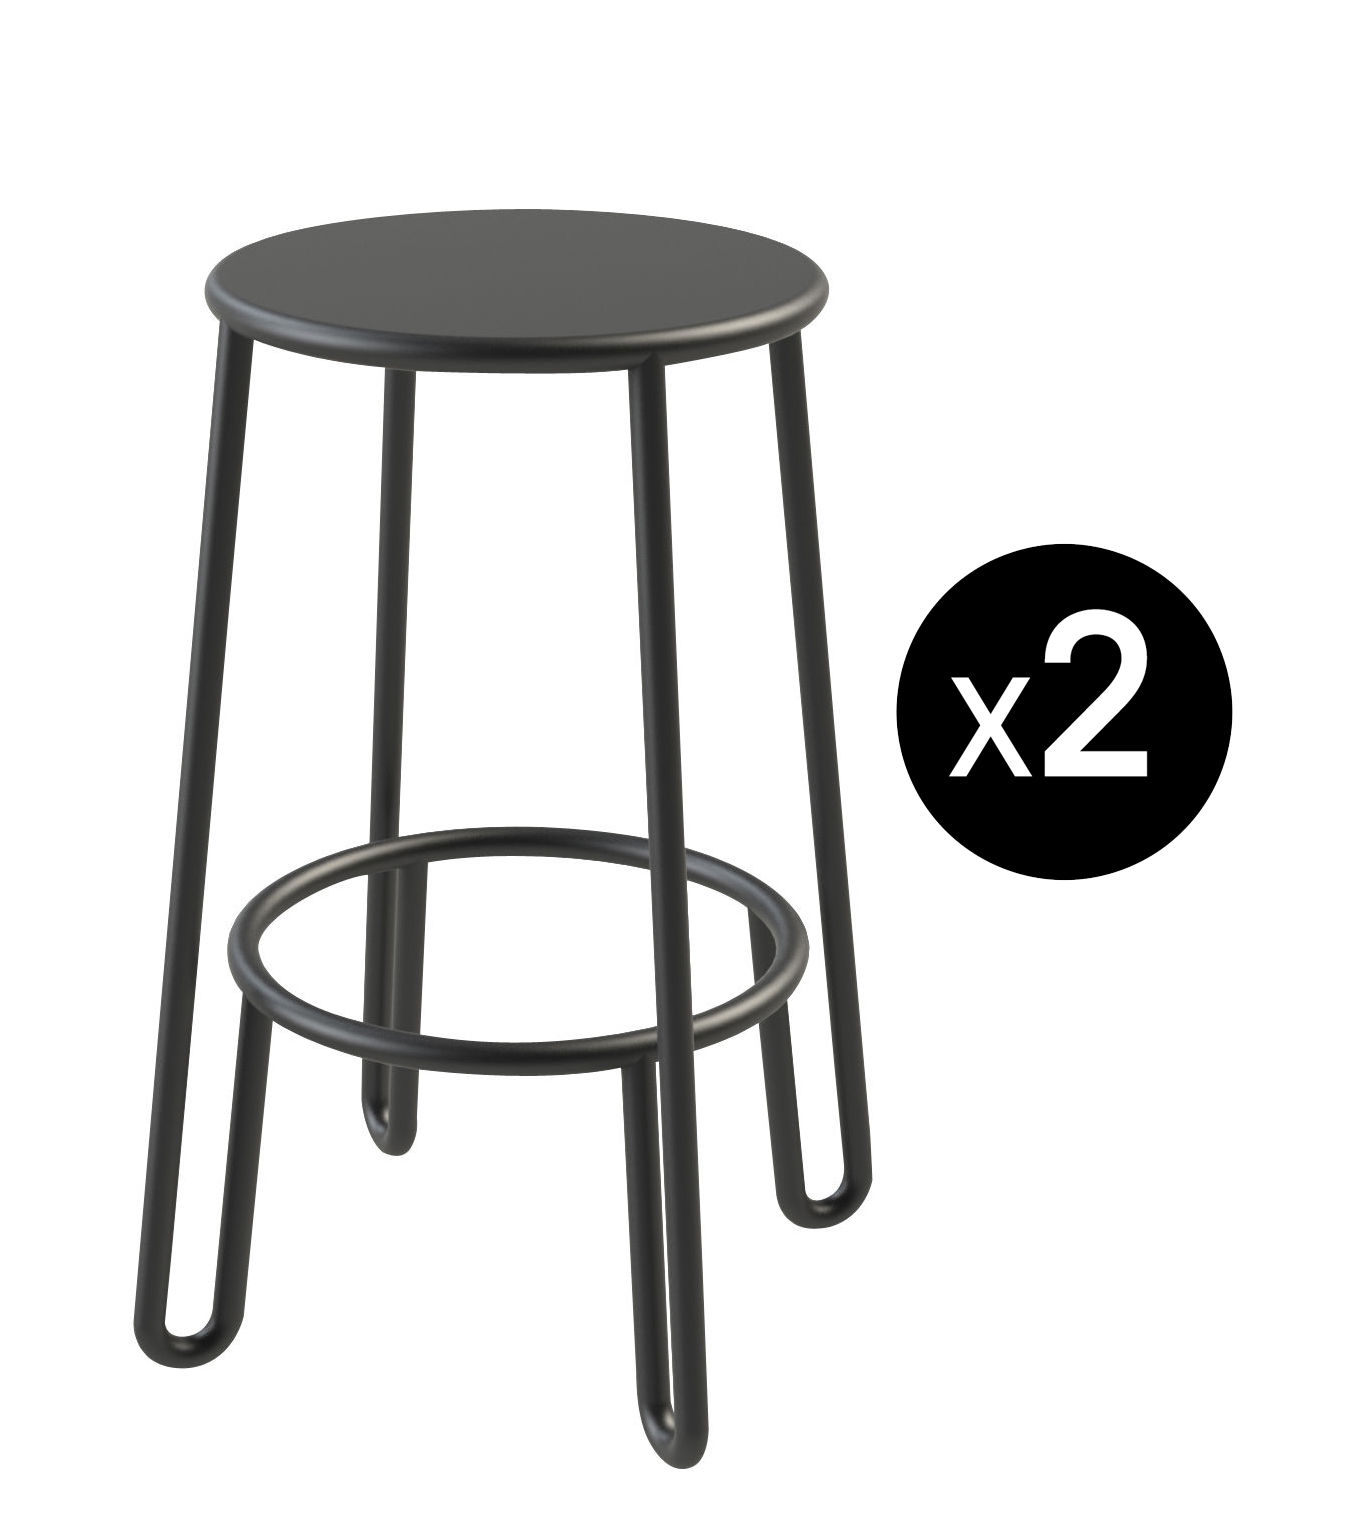 Furniture - Bar Stools - Huggy Bar stool - / H 65 cm - Set of 2 by Maiori - Carbon - Lacquered aluminium